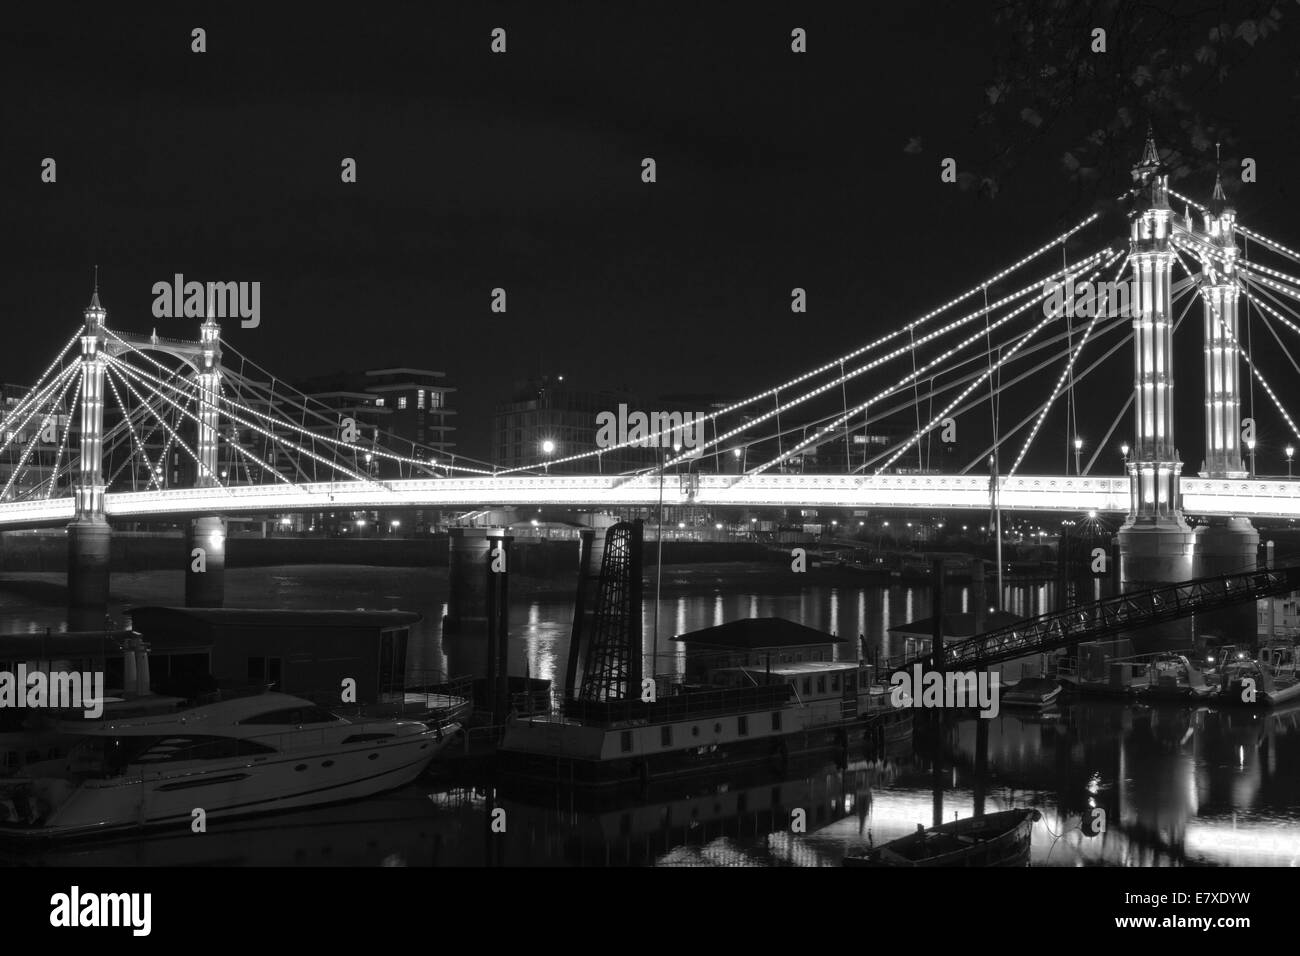 Black & White image of Albert Bridge in London, England. - Stock Image